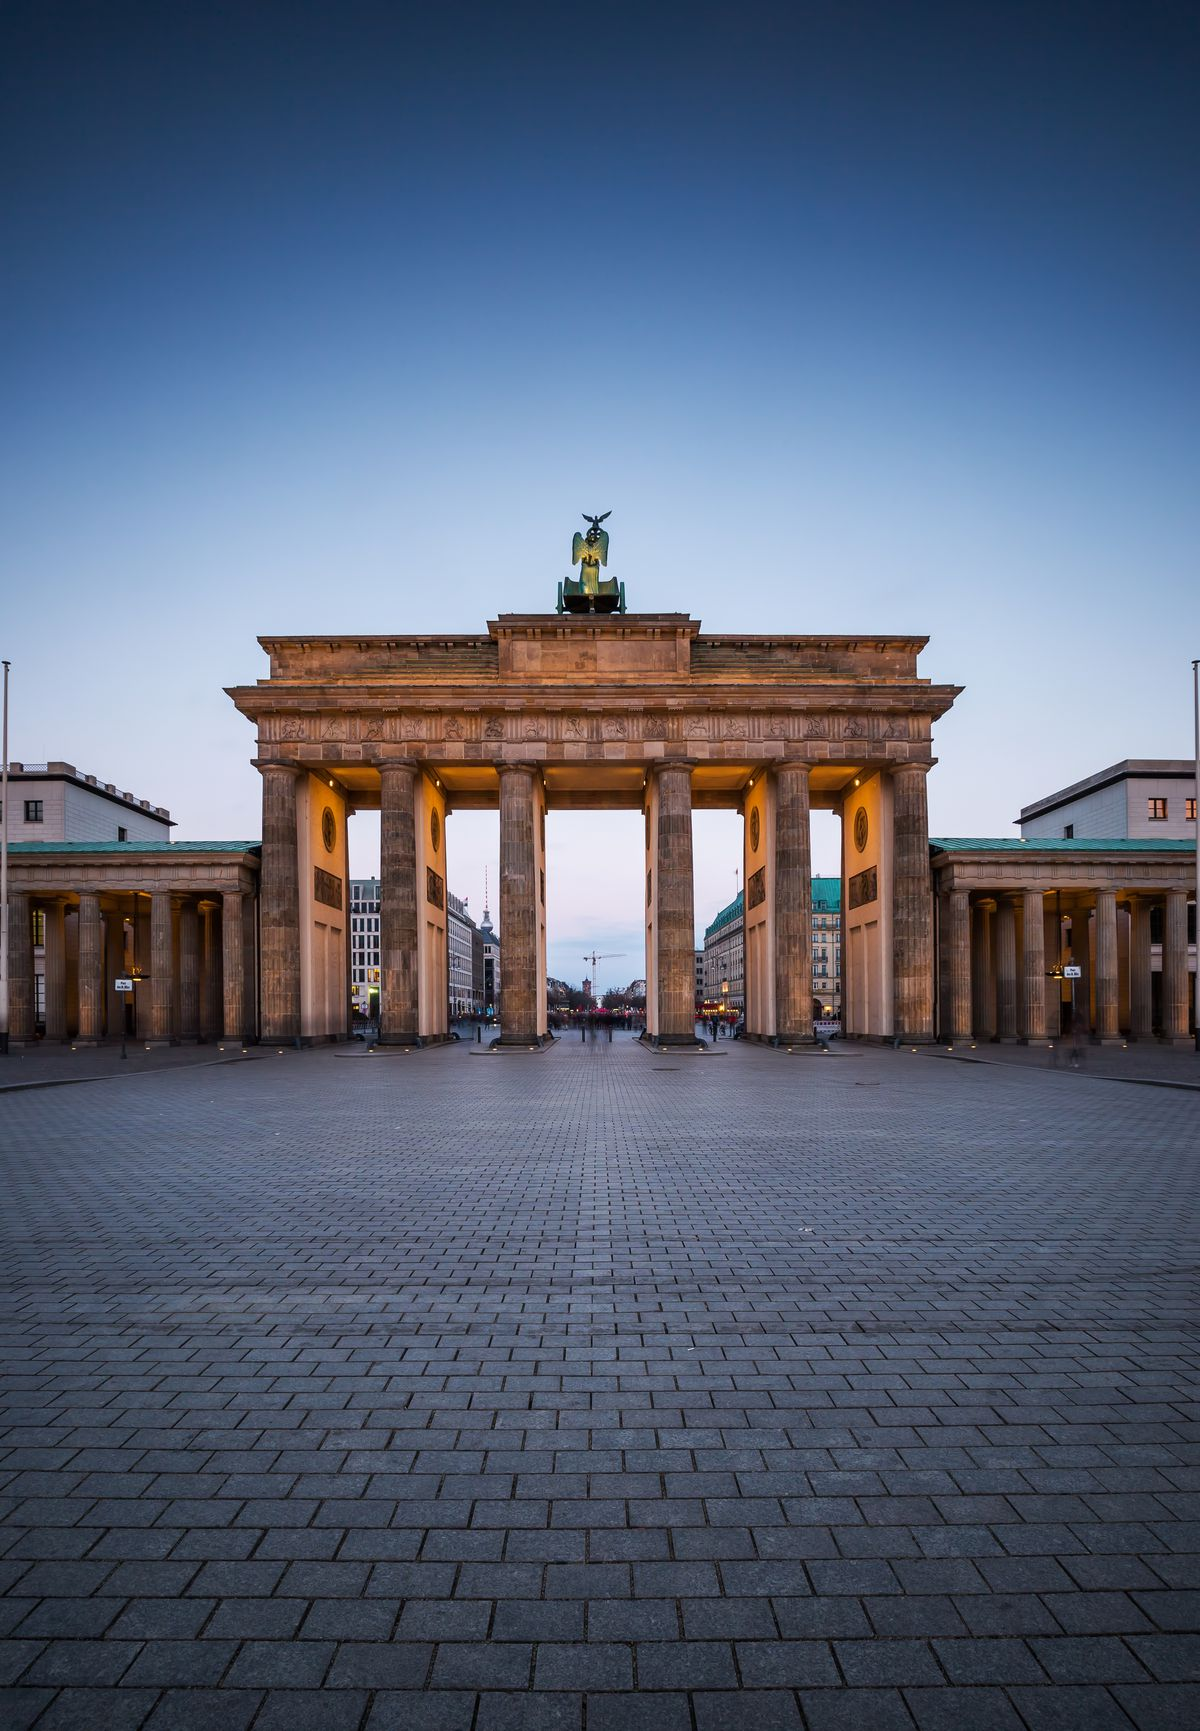 An exterior view of the Brandenburg Gate in Germany. The gate has tall columns and a statue on top.